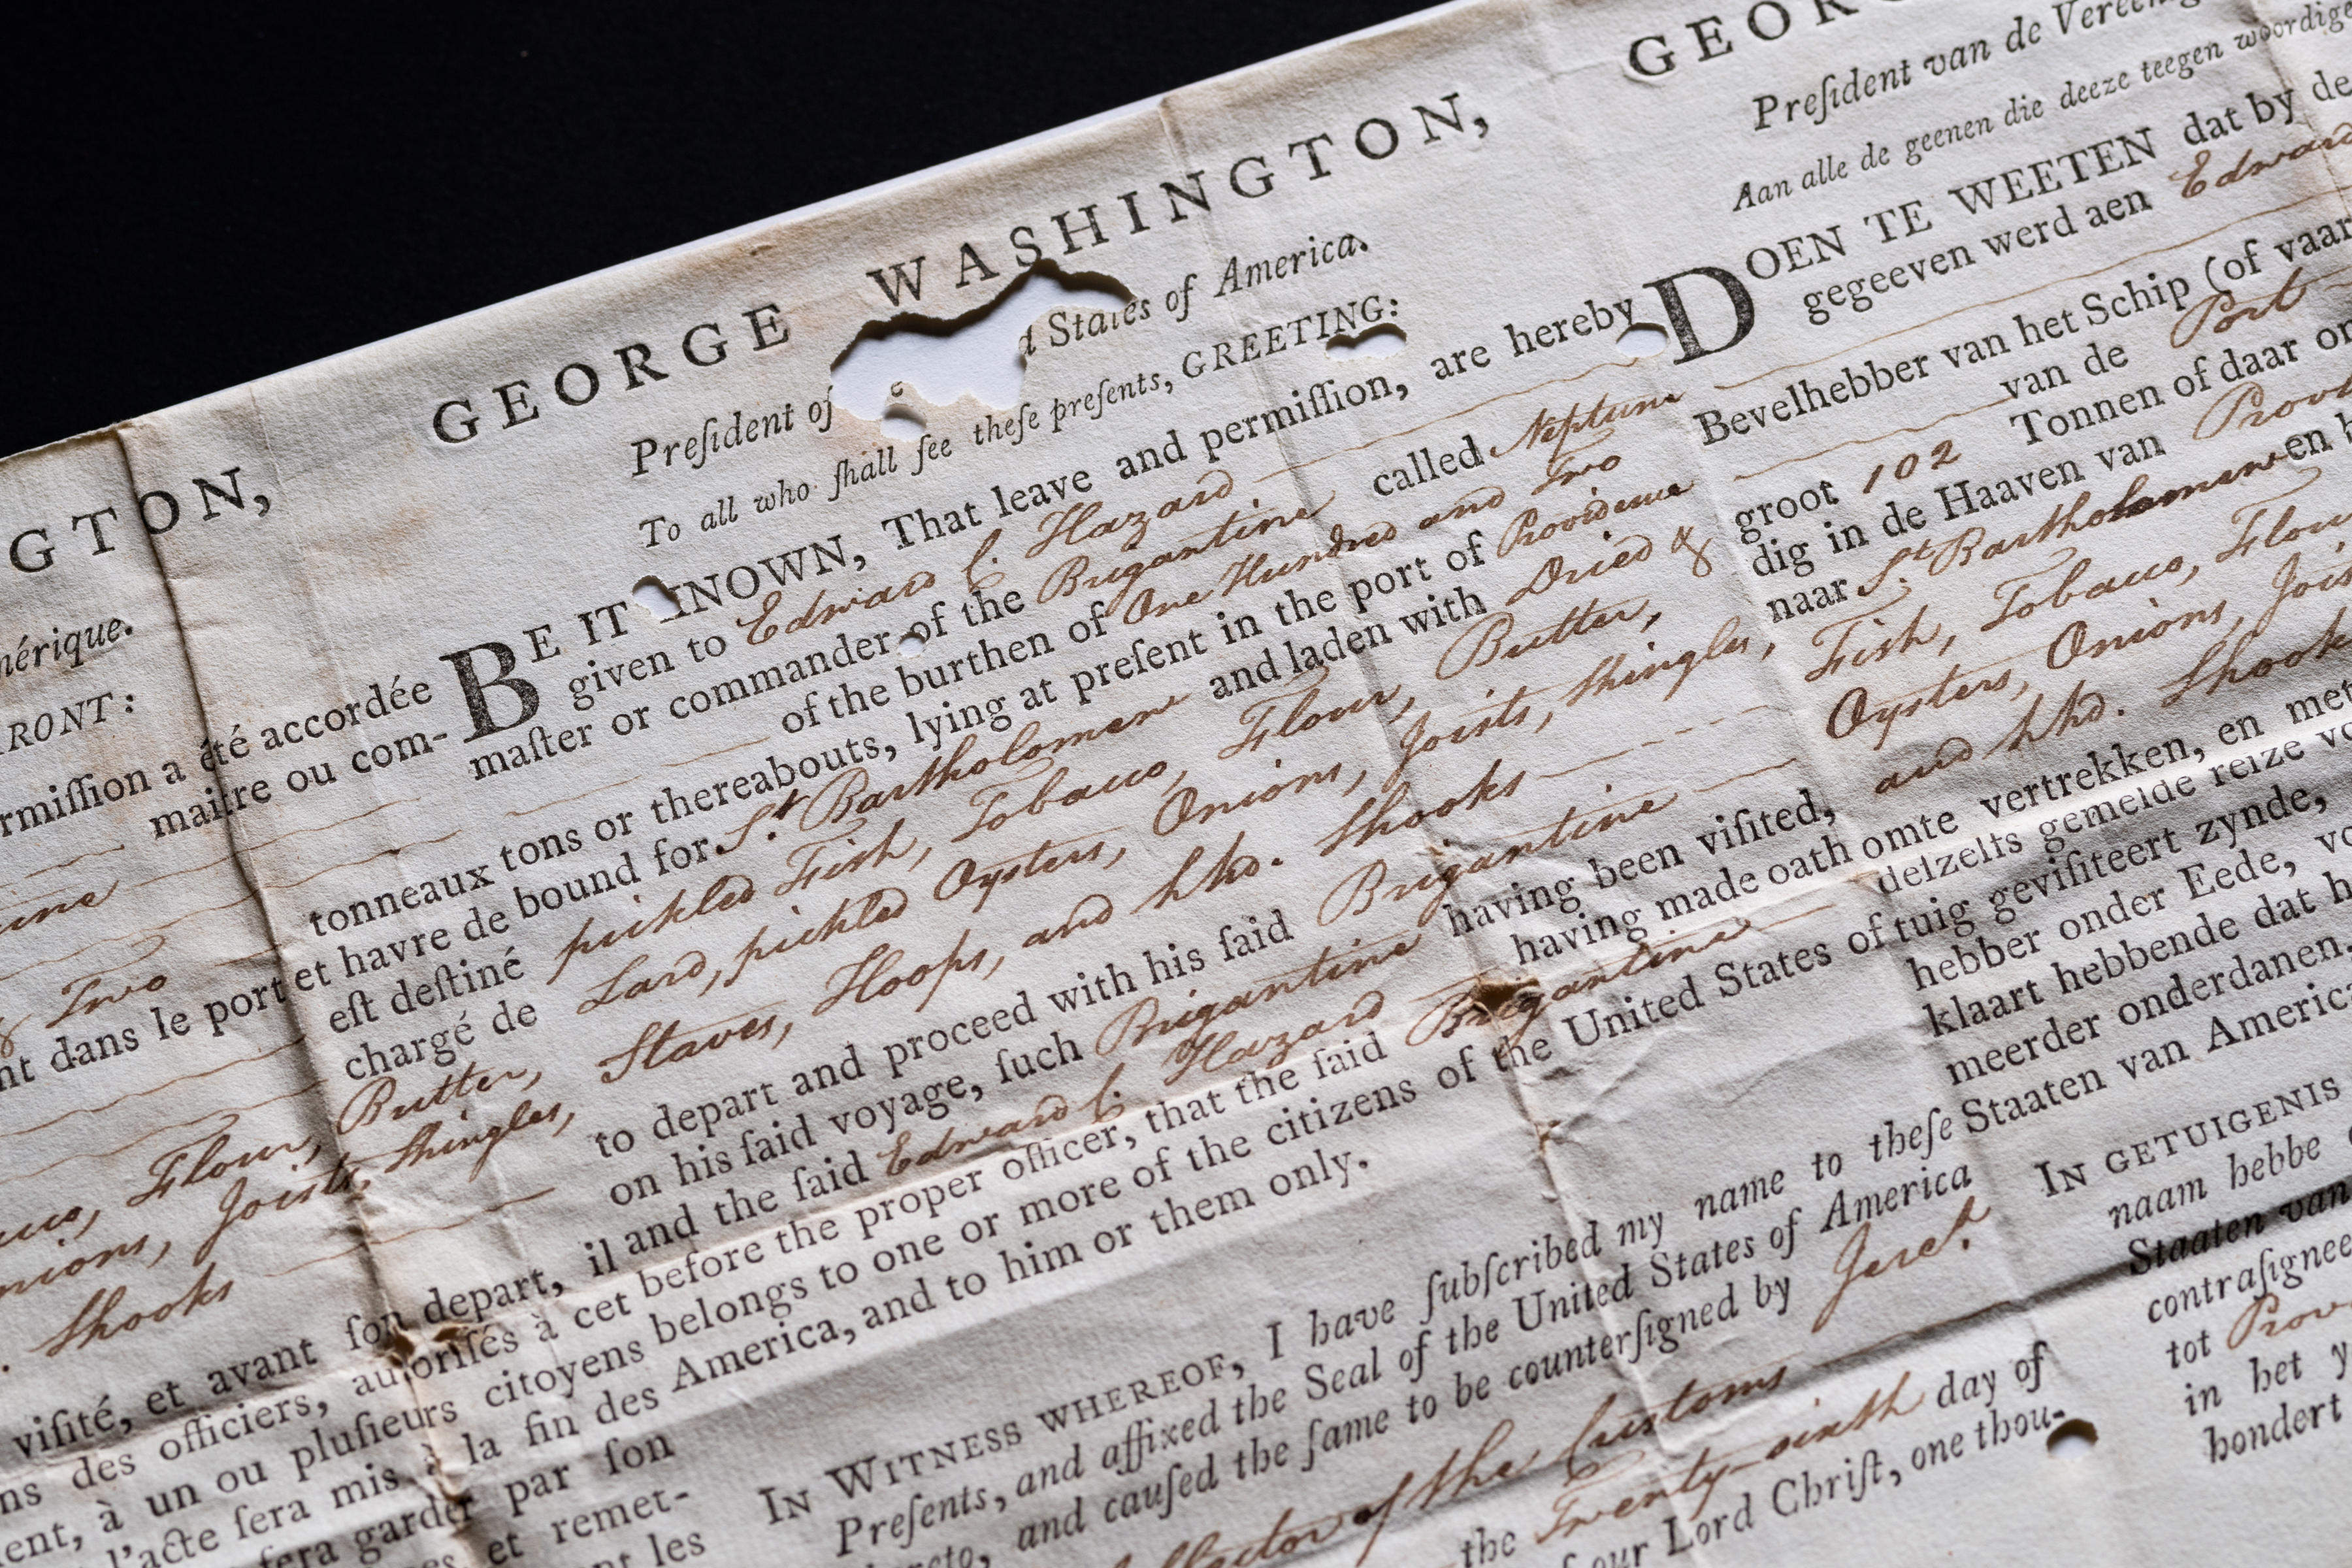 Detail from a weathered printed document, that includes manuscript inscriptions, shows text in English from the president of the united states.